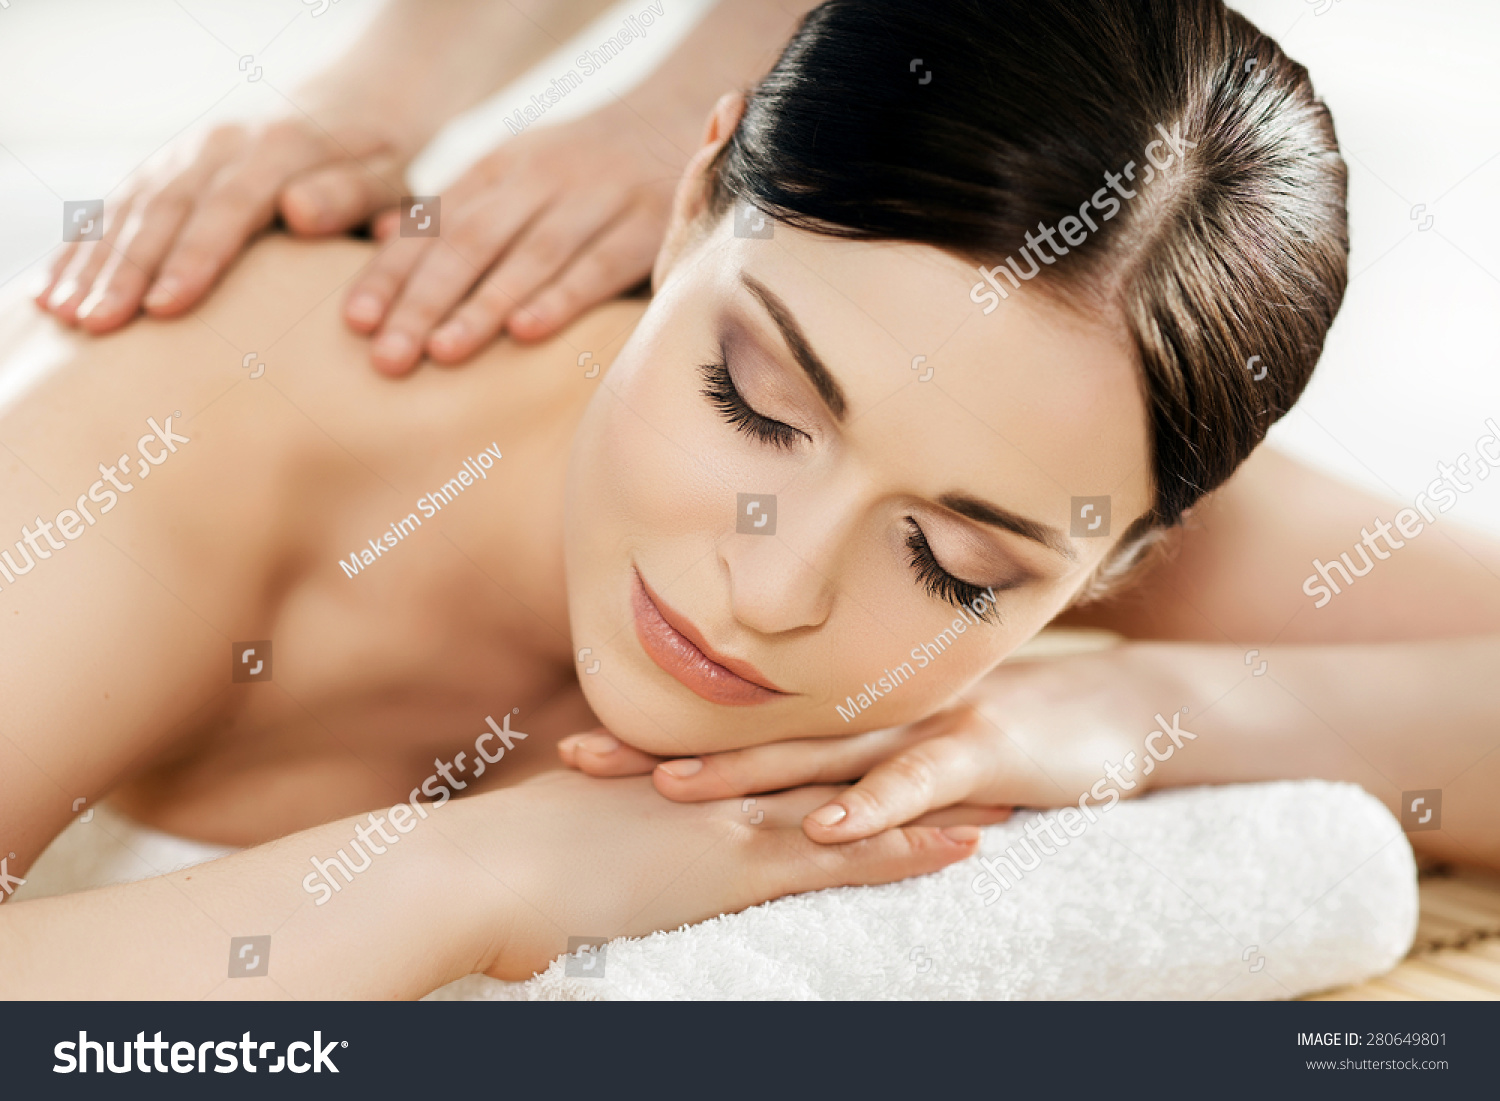 beauty spa dating in sweden